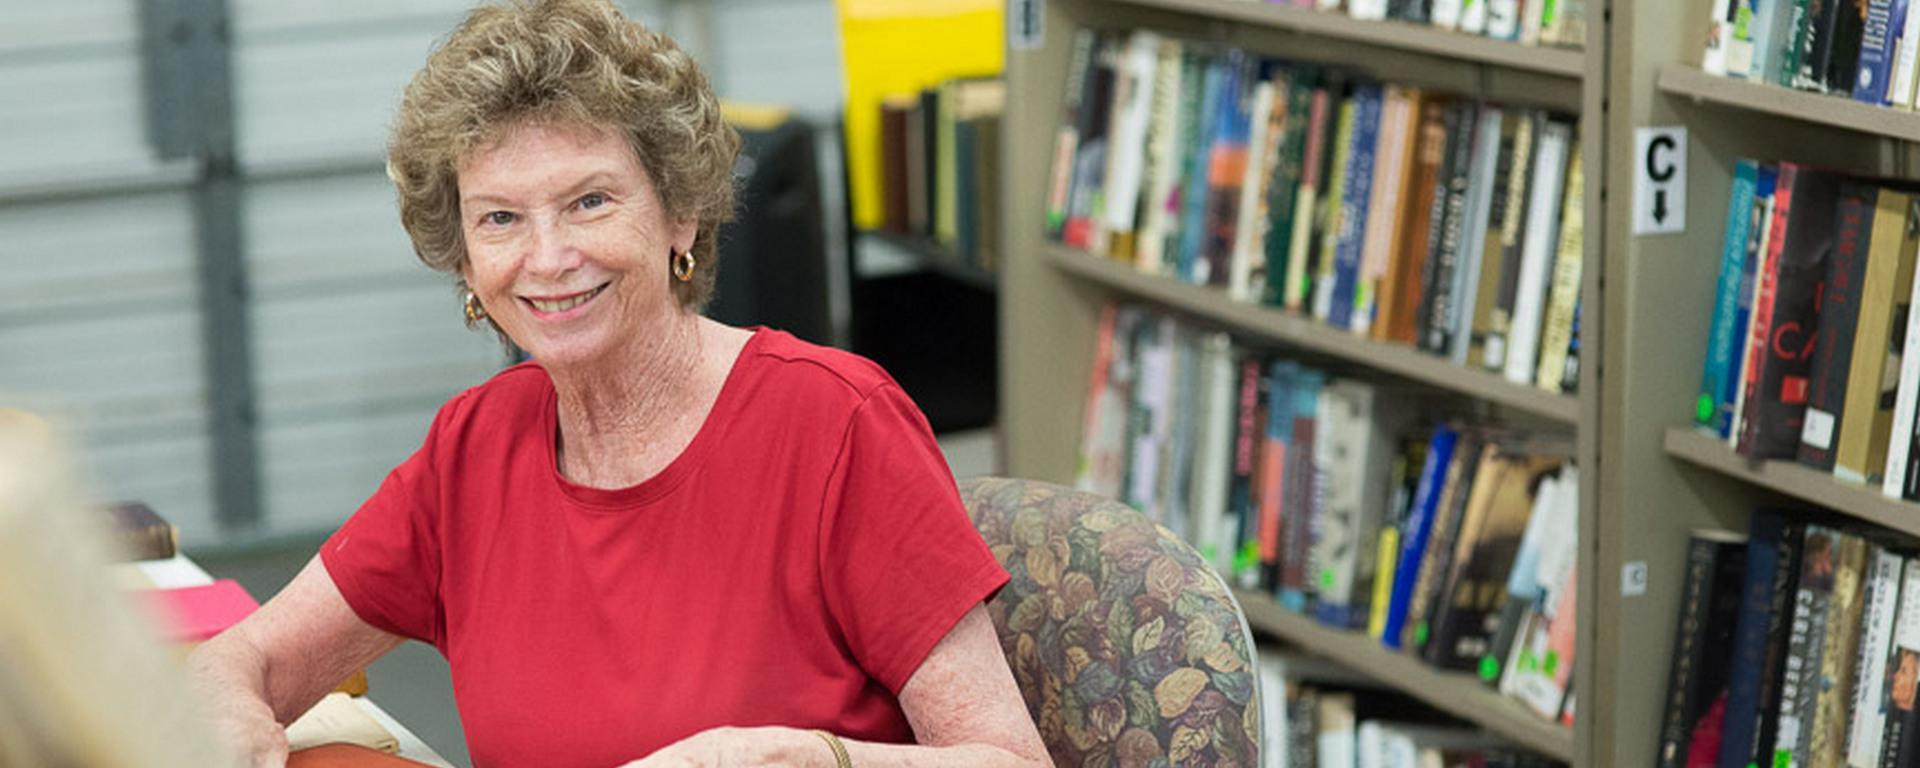 Friends of the martin county library system volunteer at the book depot